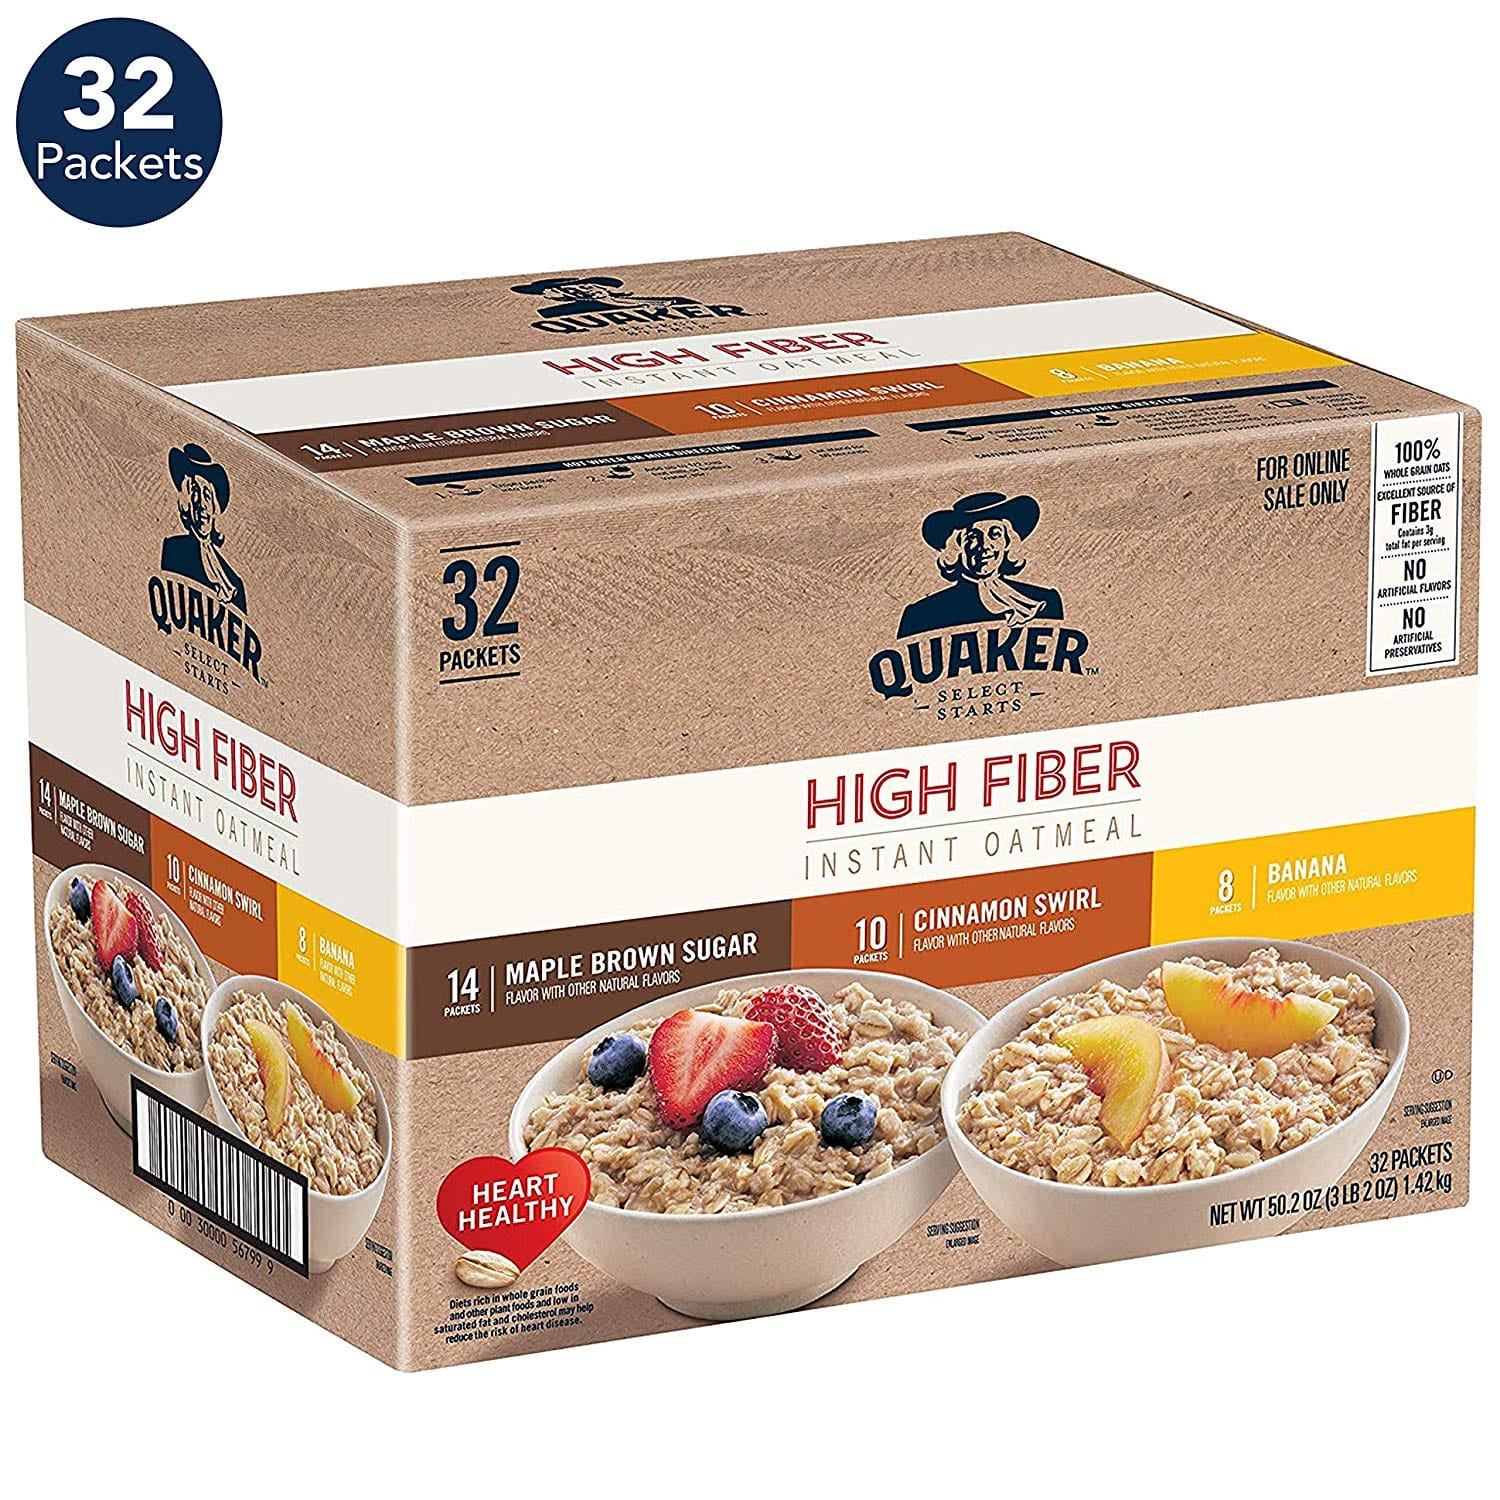 32-Count Quaker High Fiber Instant Oatmeal (3-Flavor Variety Pack) $9.61